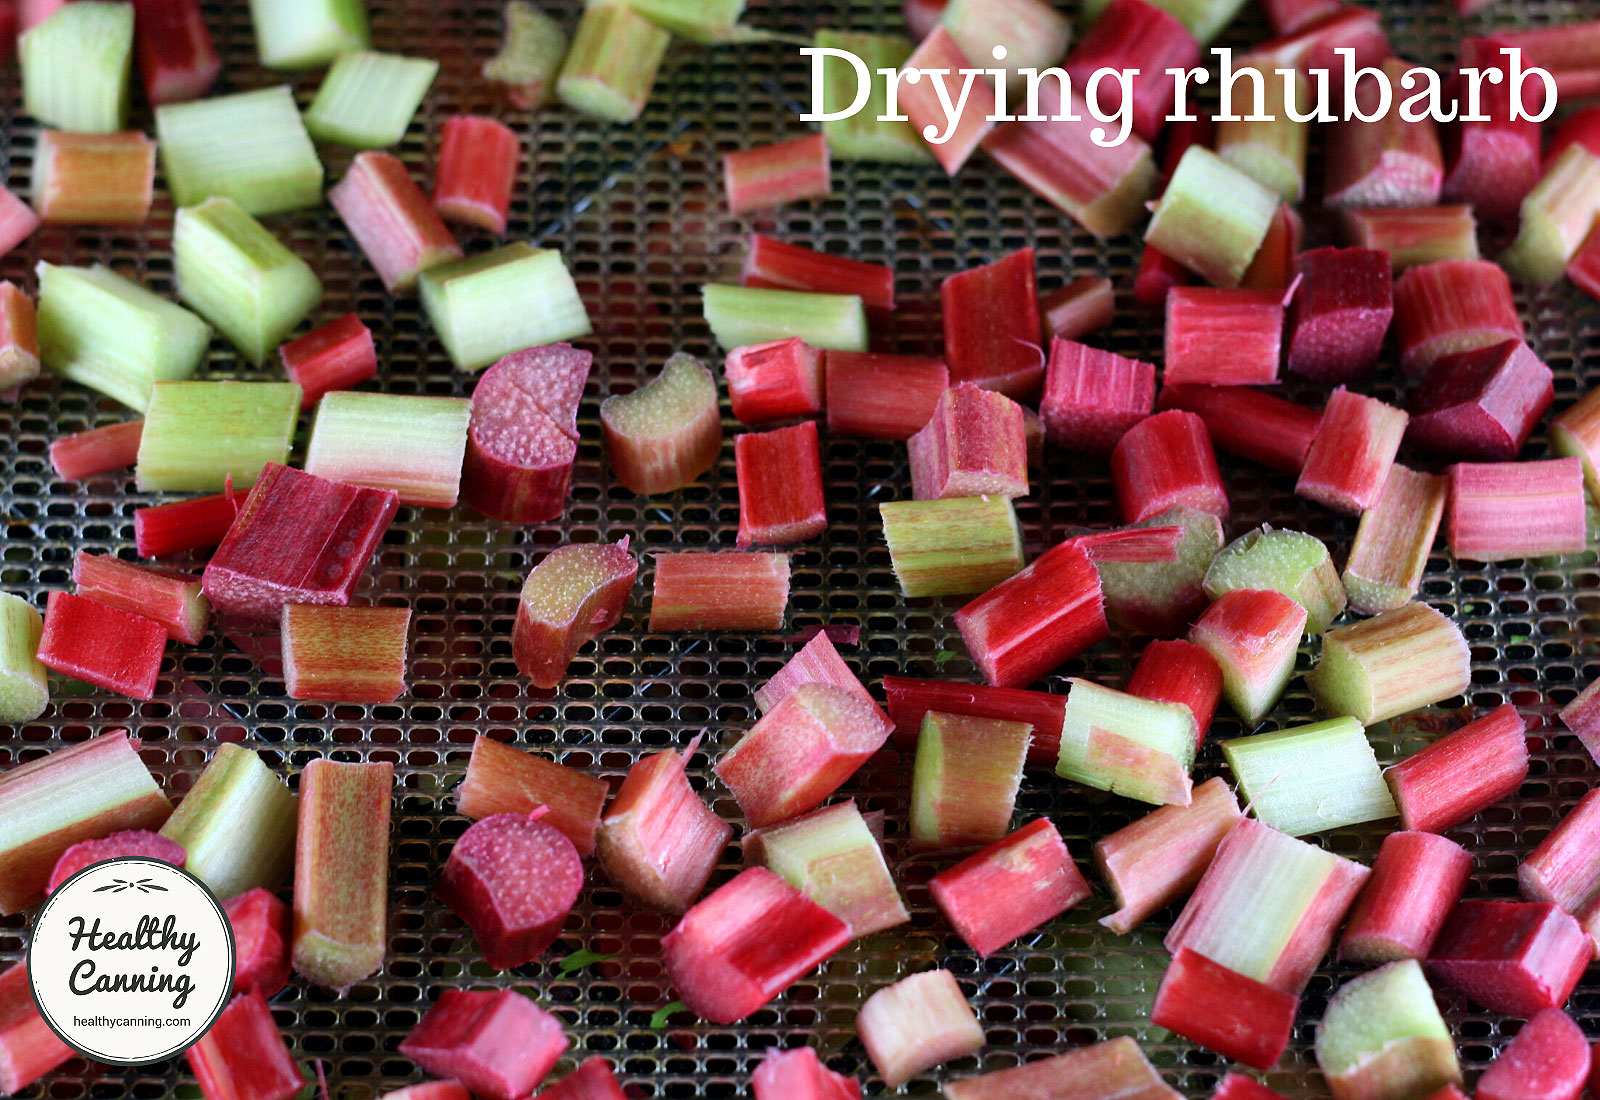 Drying rhubarb on tray